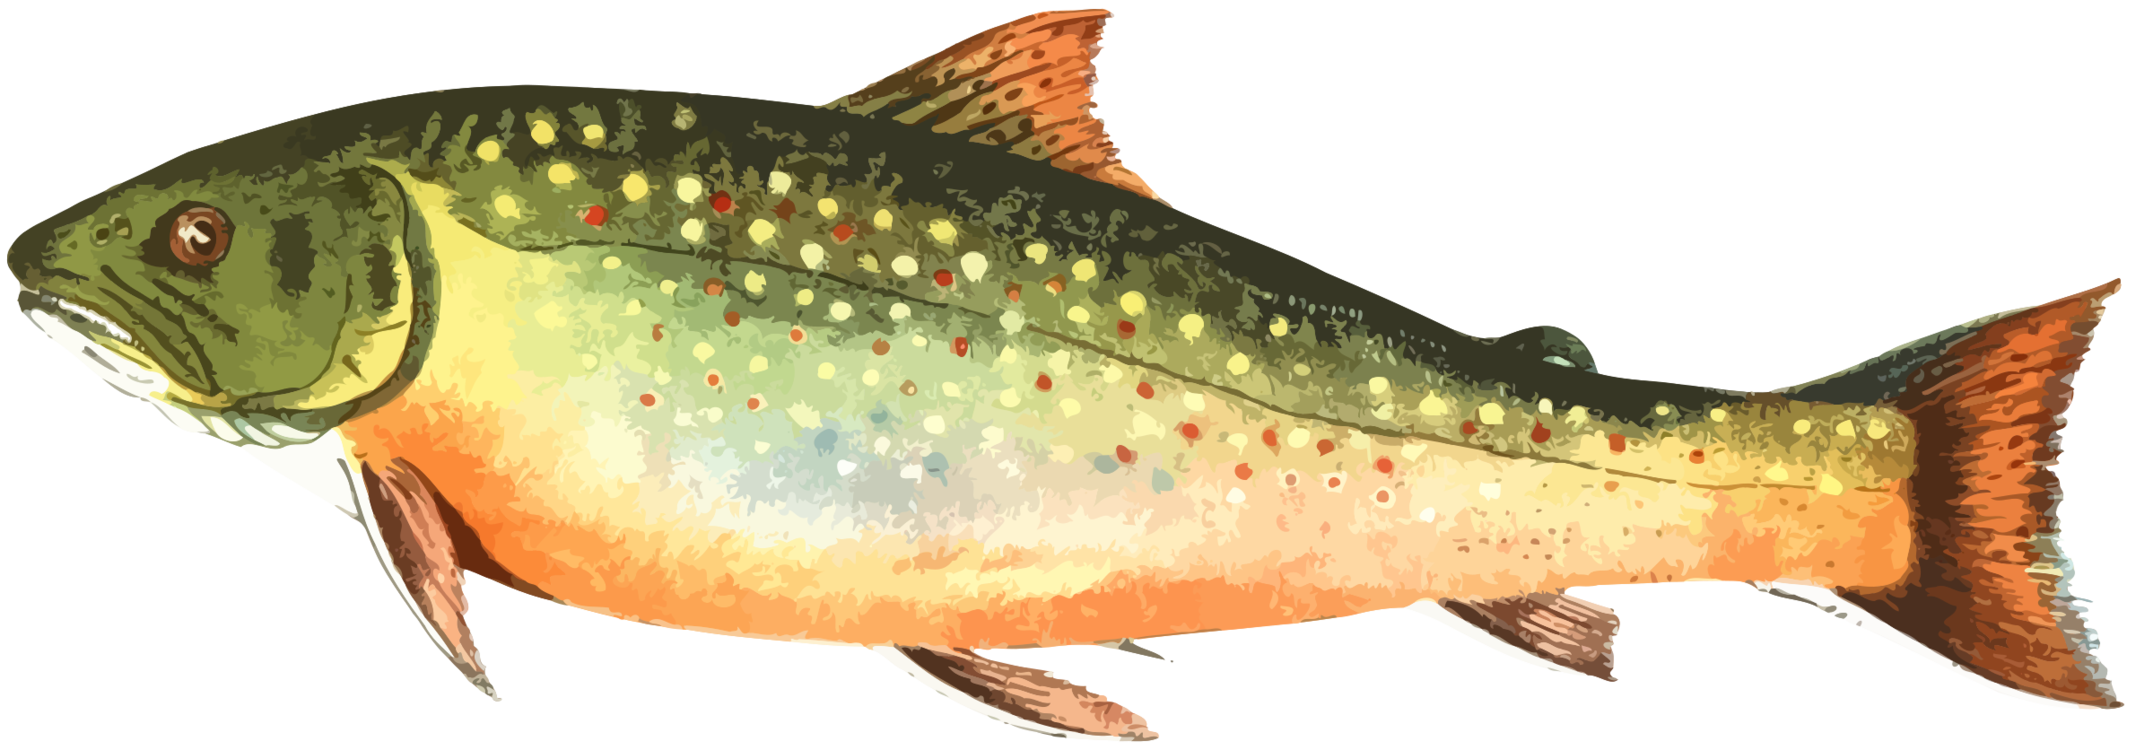 Trout clipart pink salmon. Transparent png free download